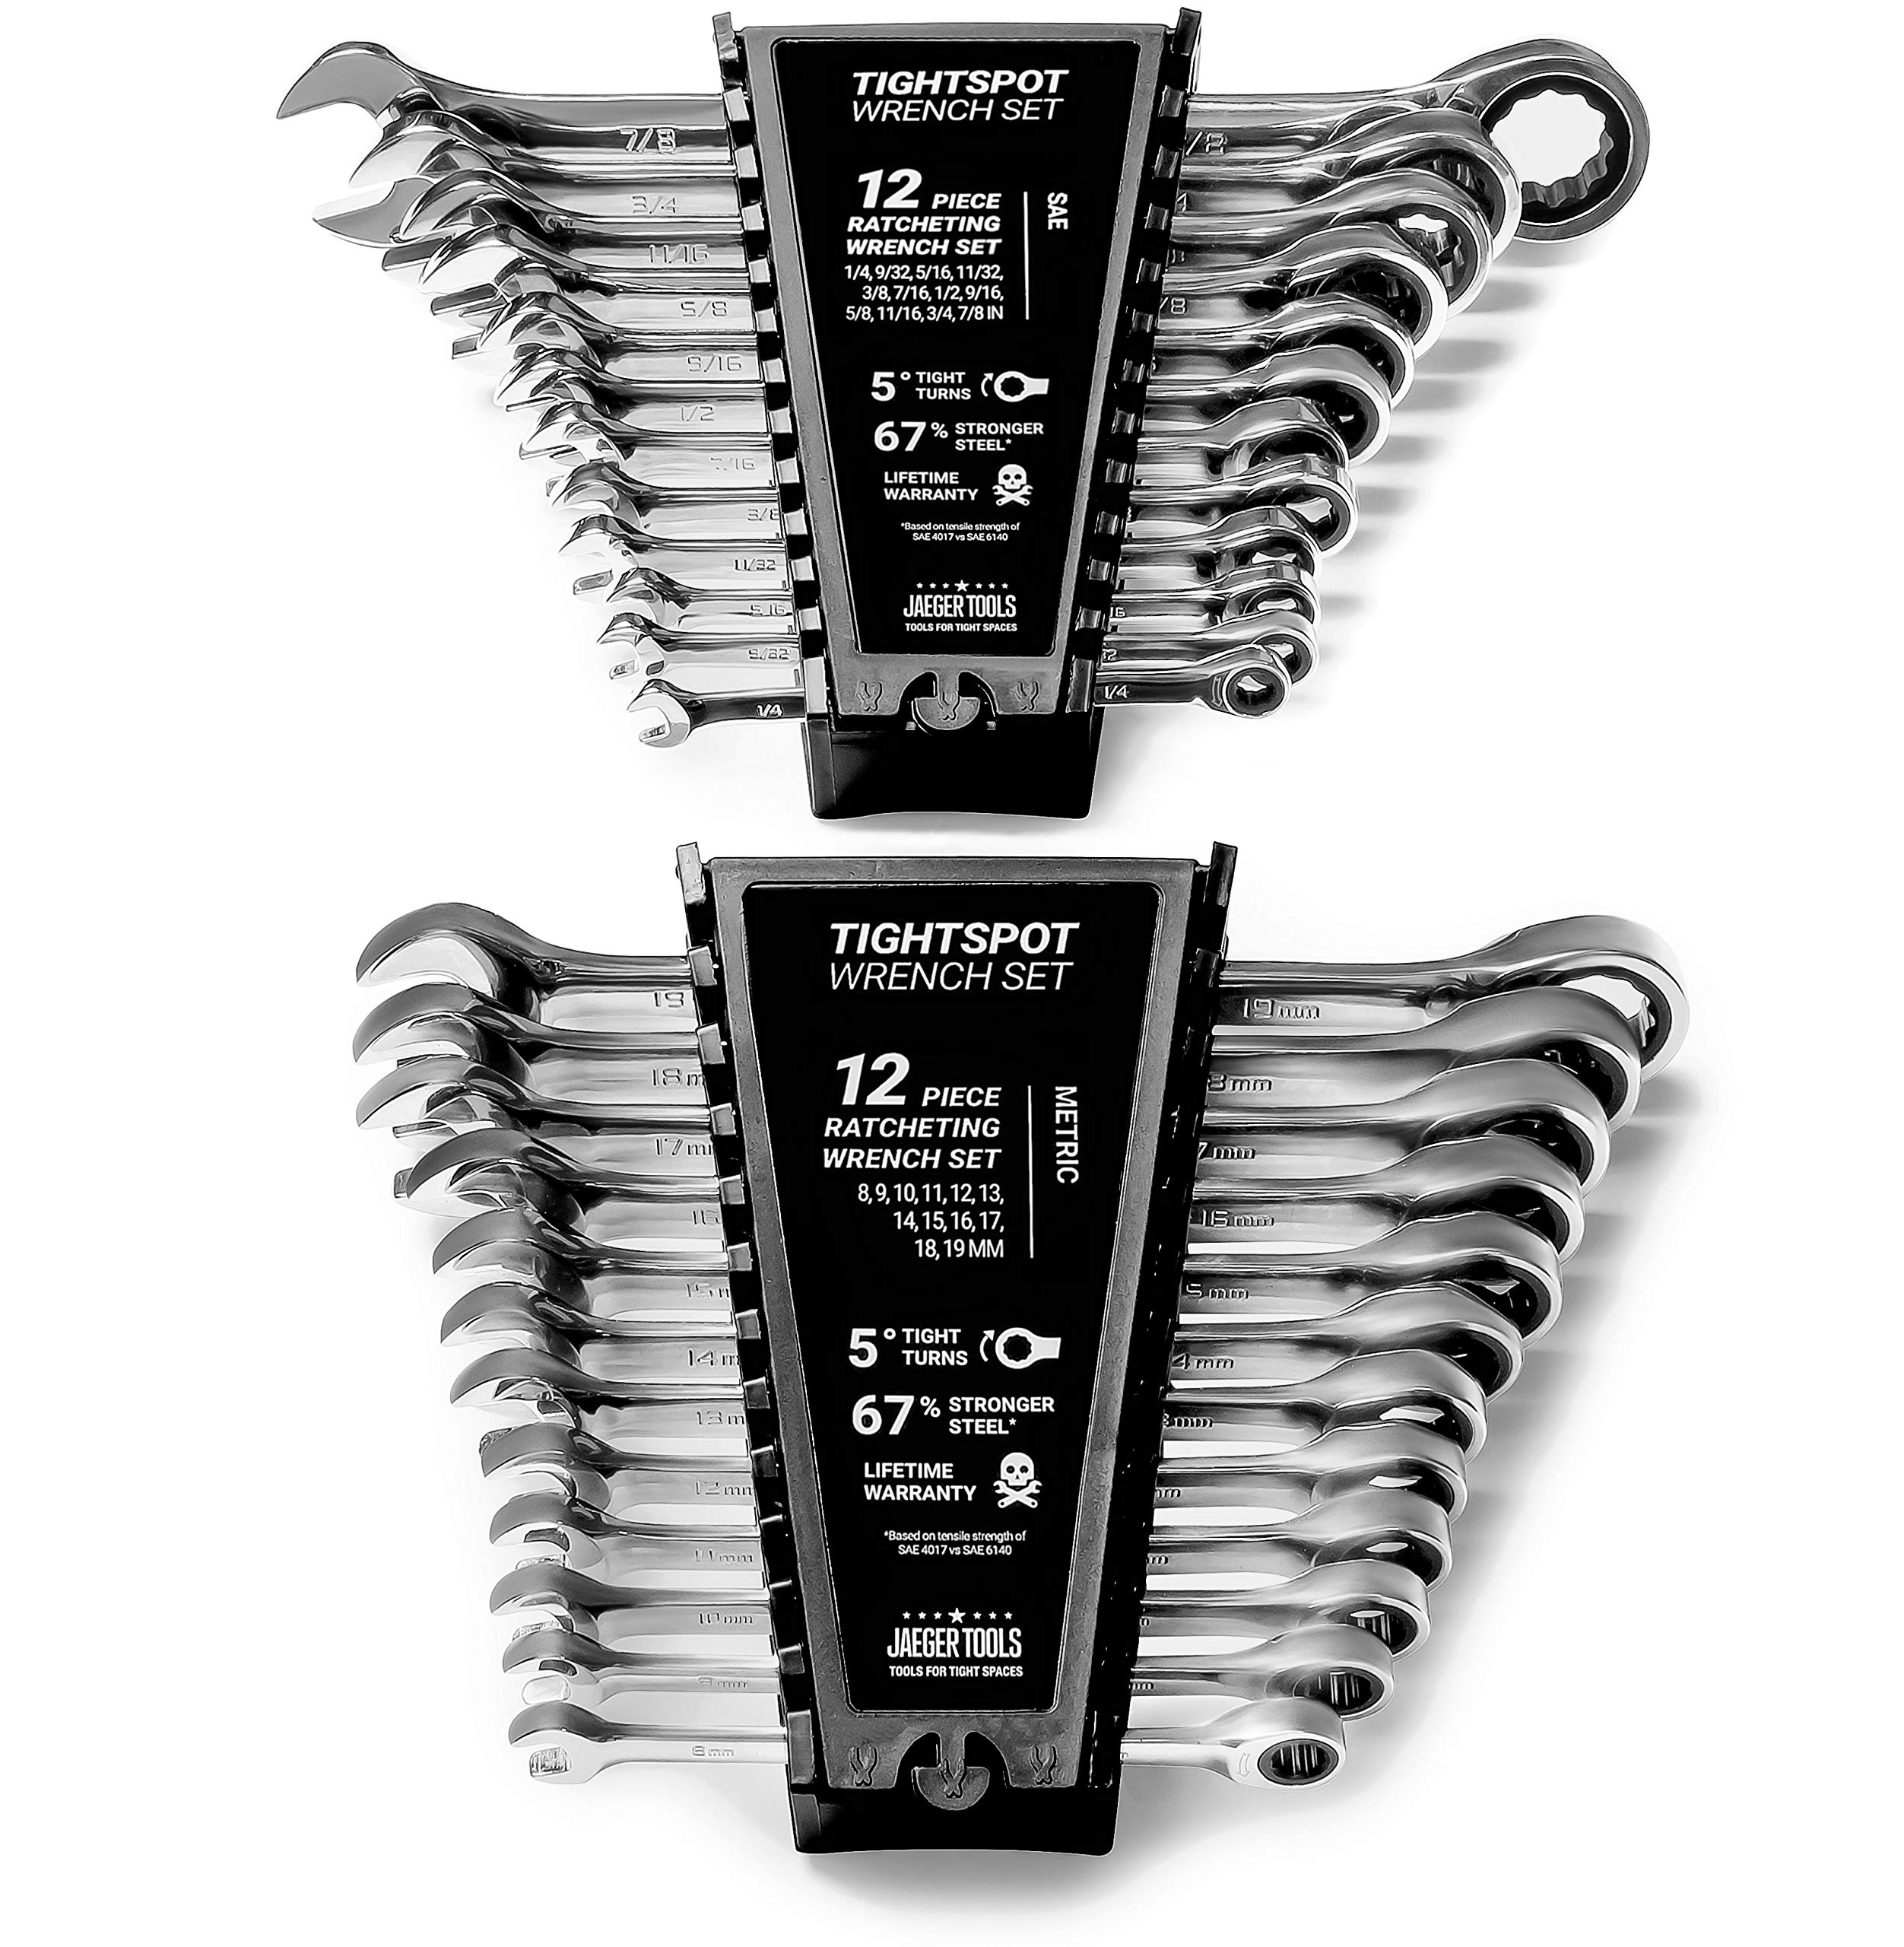 24pc TIGHTSPOT Ratchet Wrench MASTER